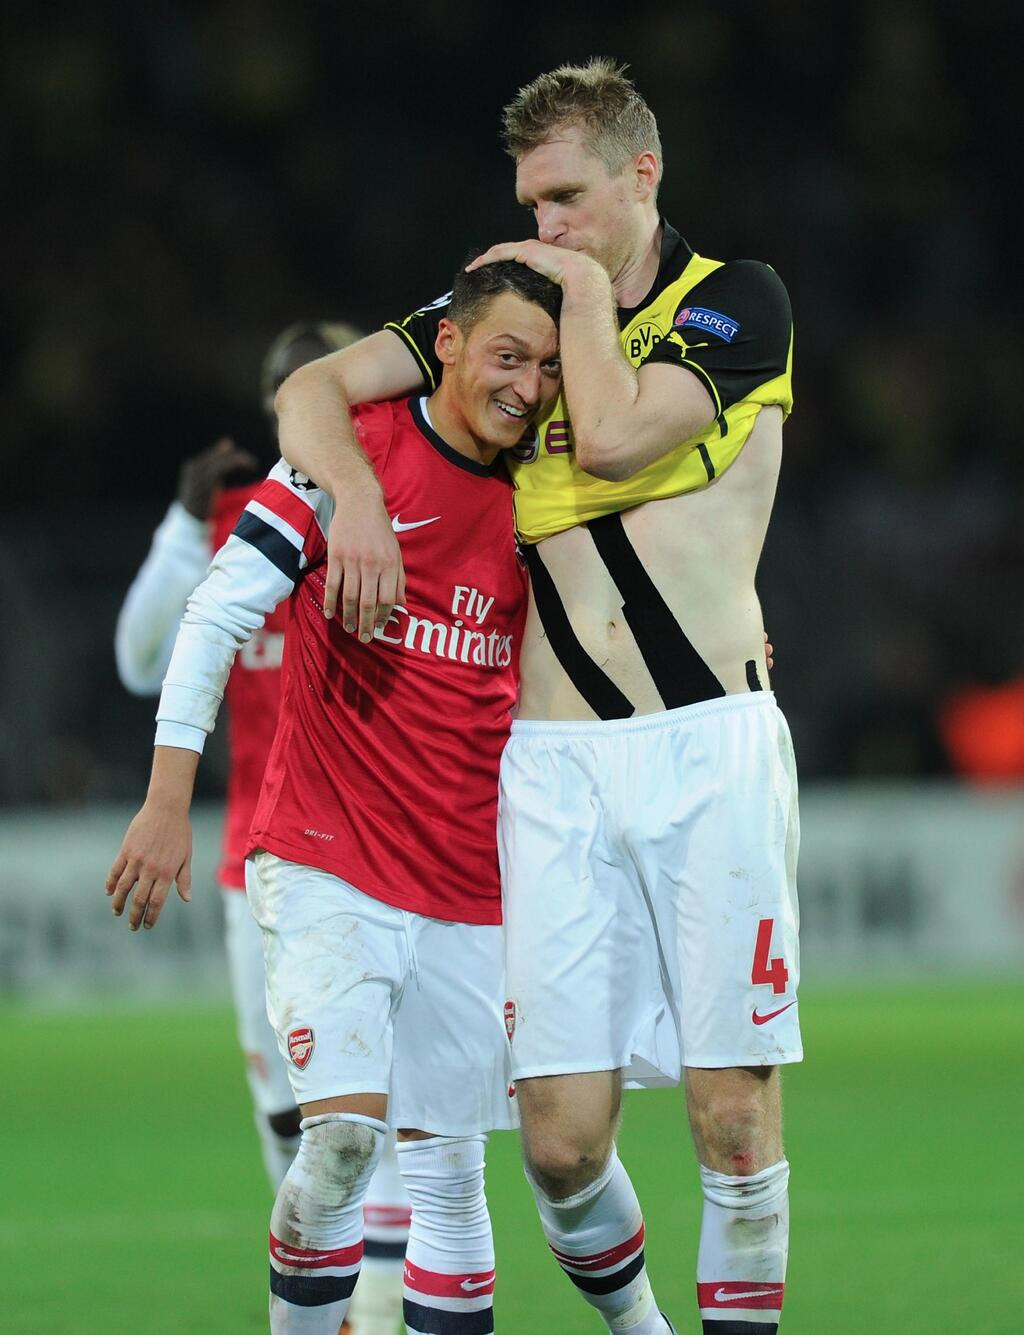 kBaypQg Mesut Ozil and Per Mertesacker embrace on the pitch following 1 0 win at Dortmund